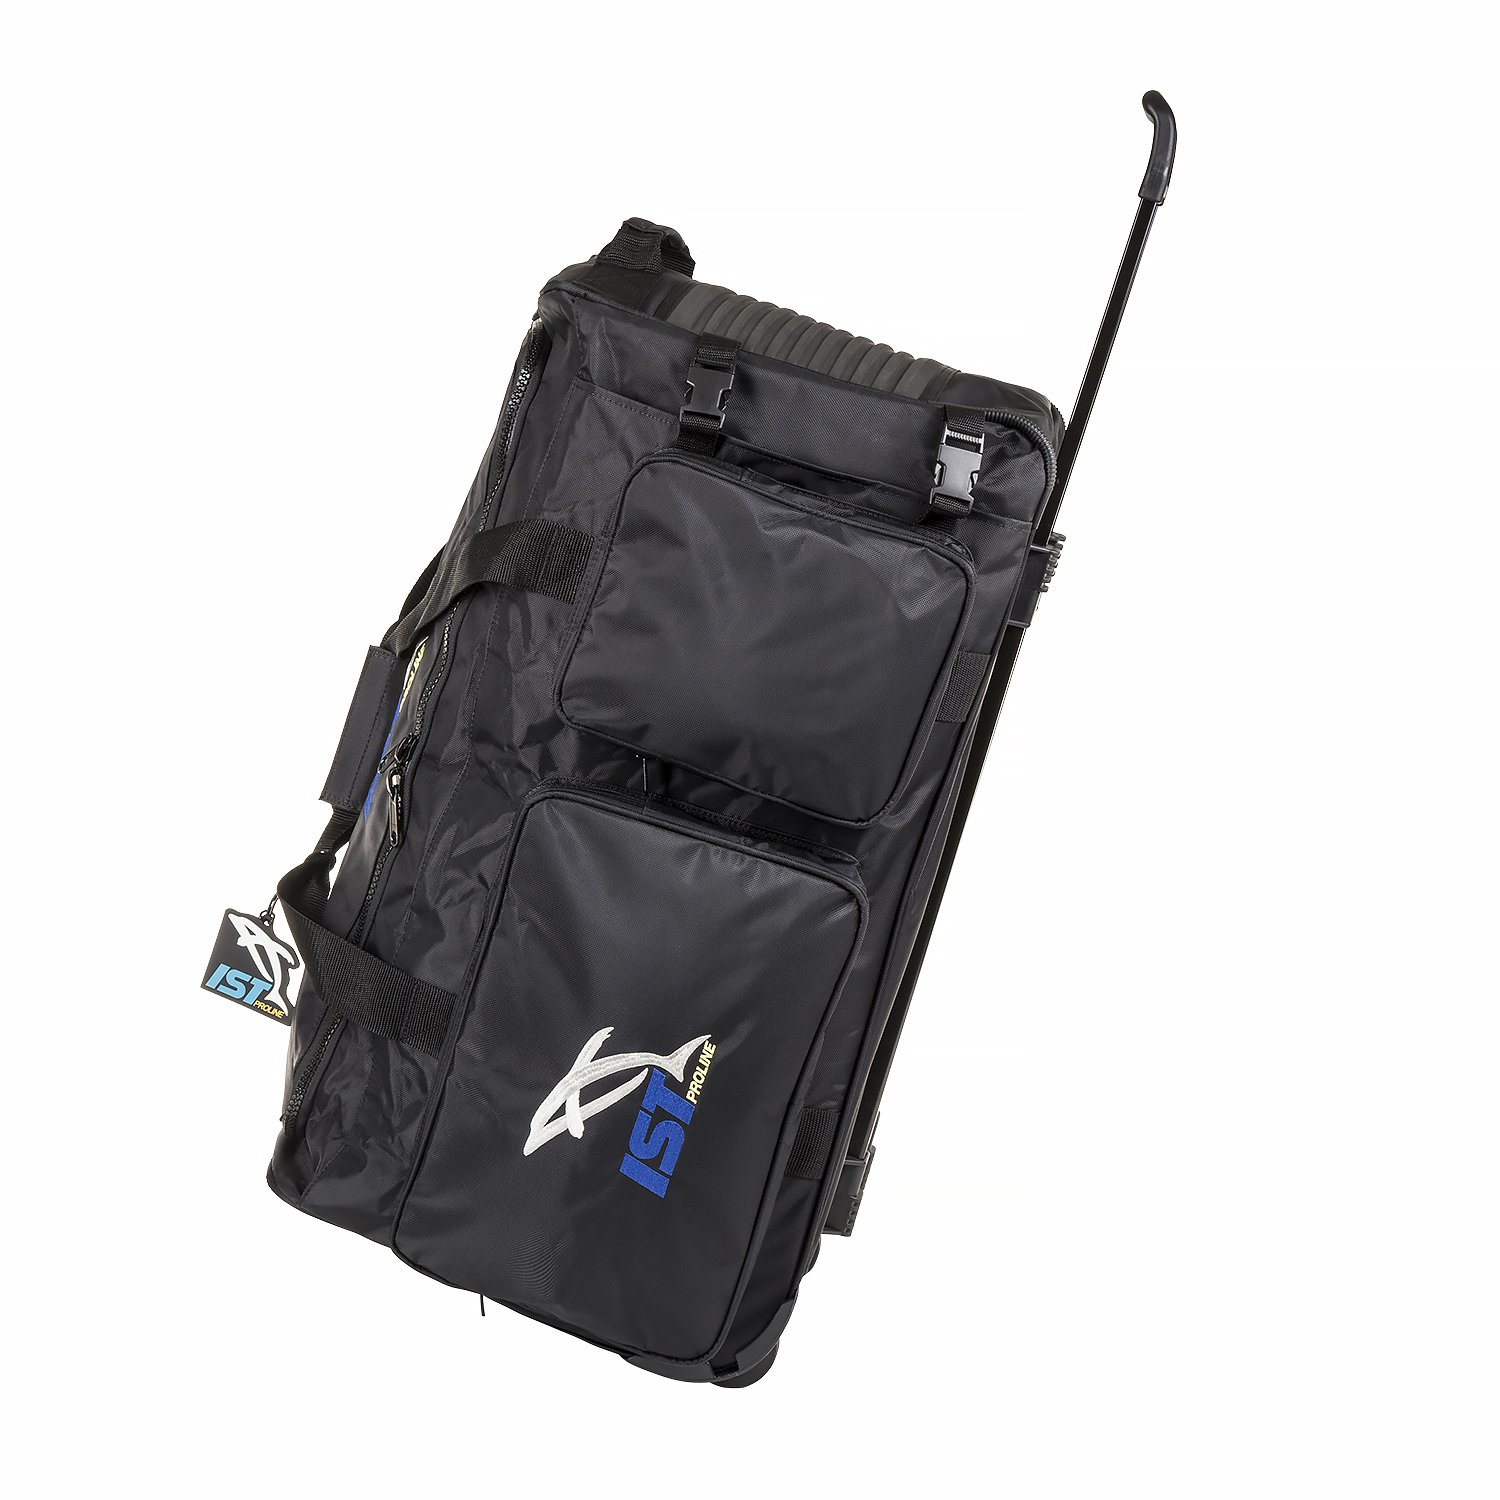 IST Heavy Duty Dive Roller Bag with Duffel Straps for Scuba Diving Gear, Equipment & Accessories